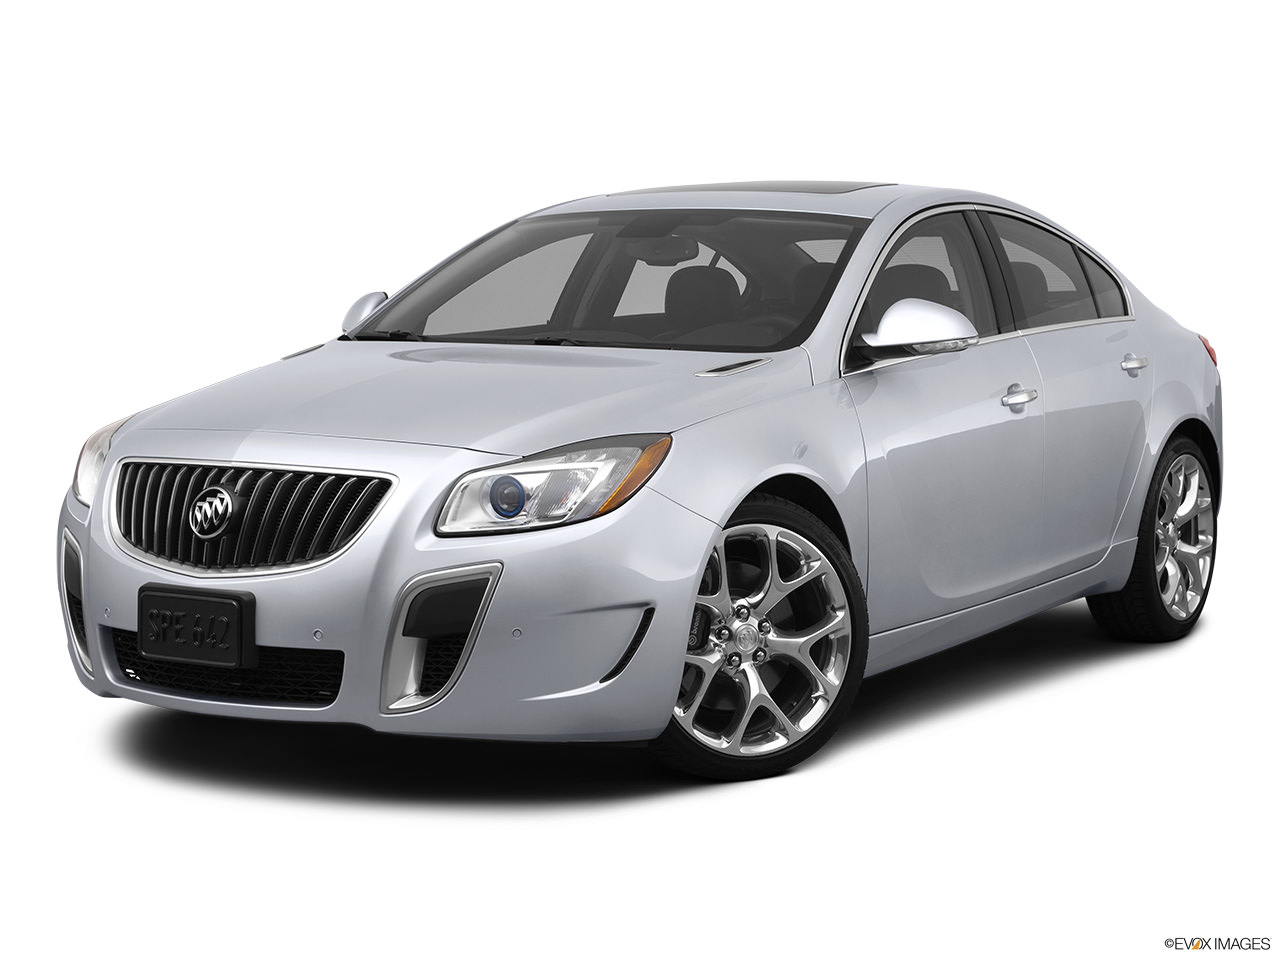 Buick Regal eAssist 2012